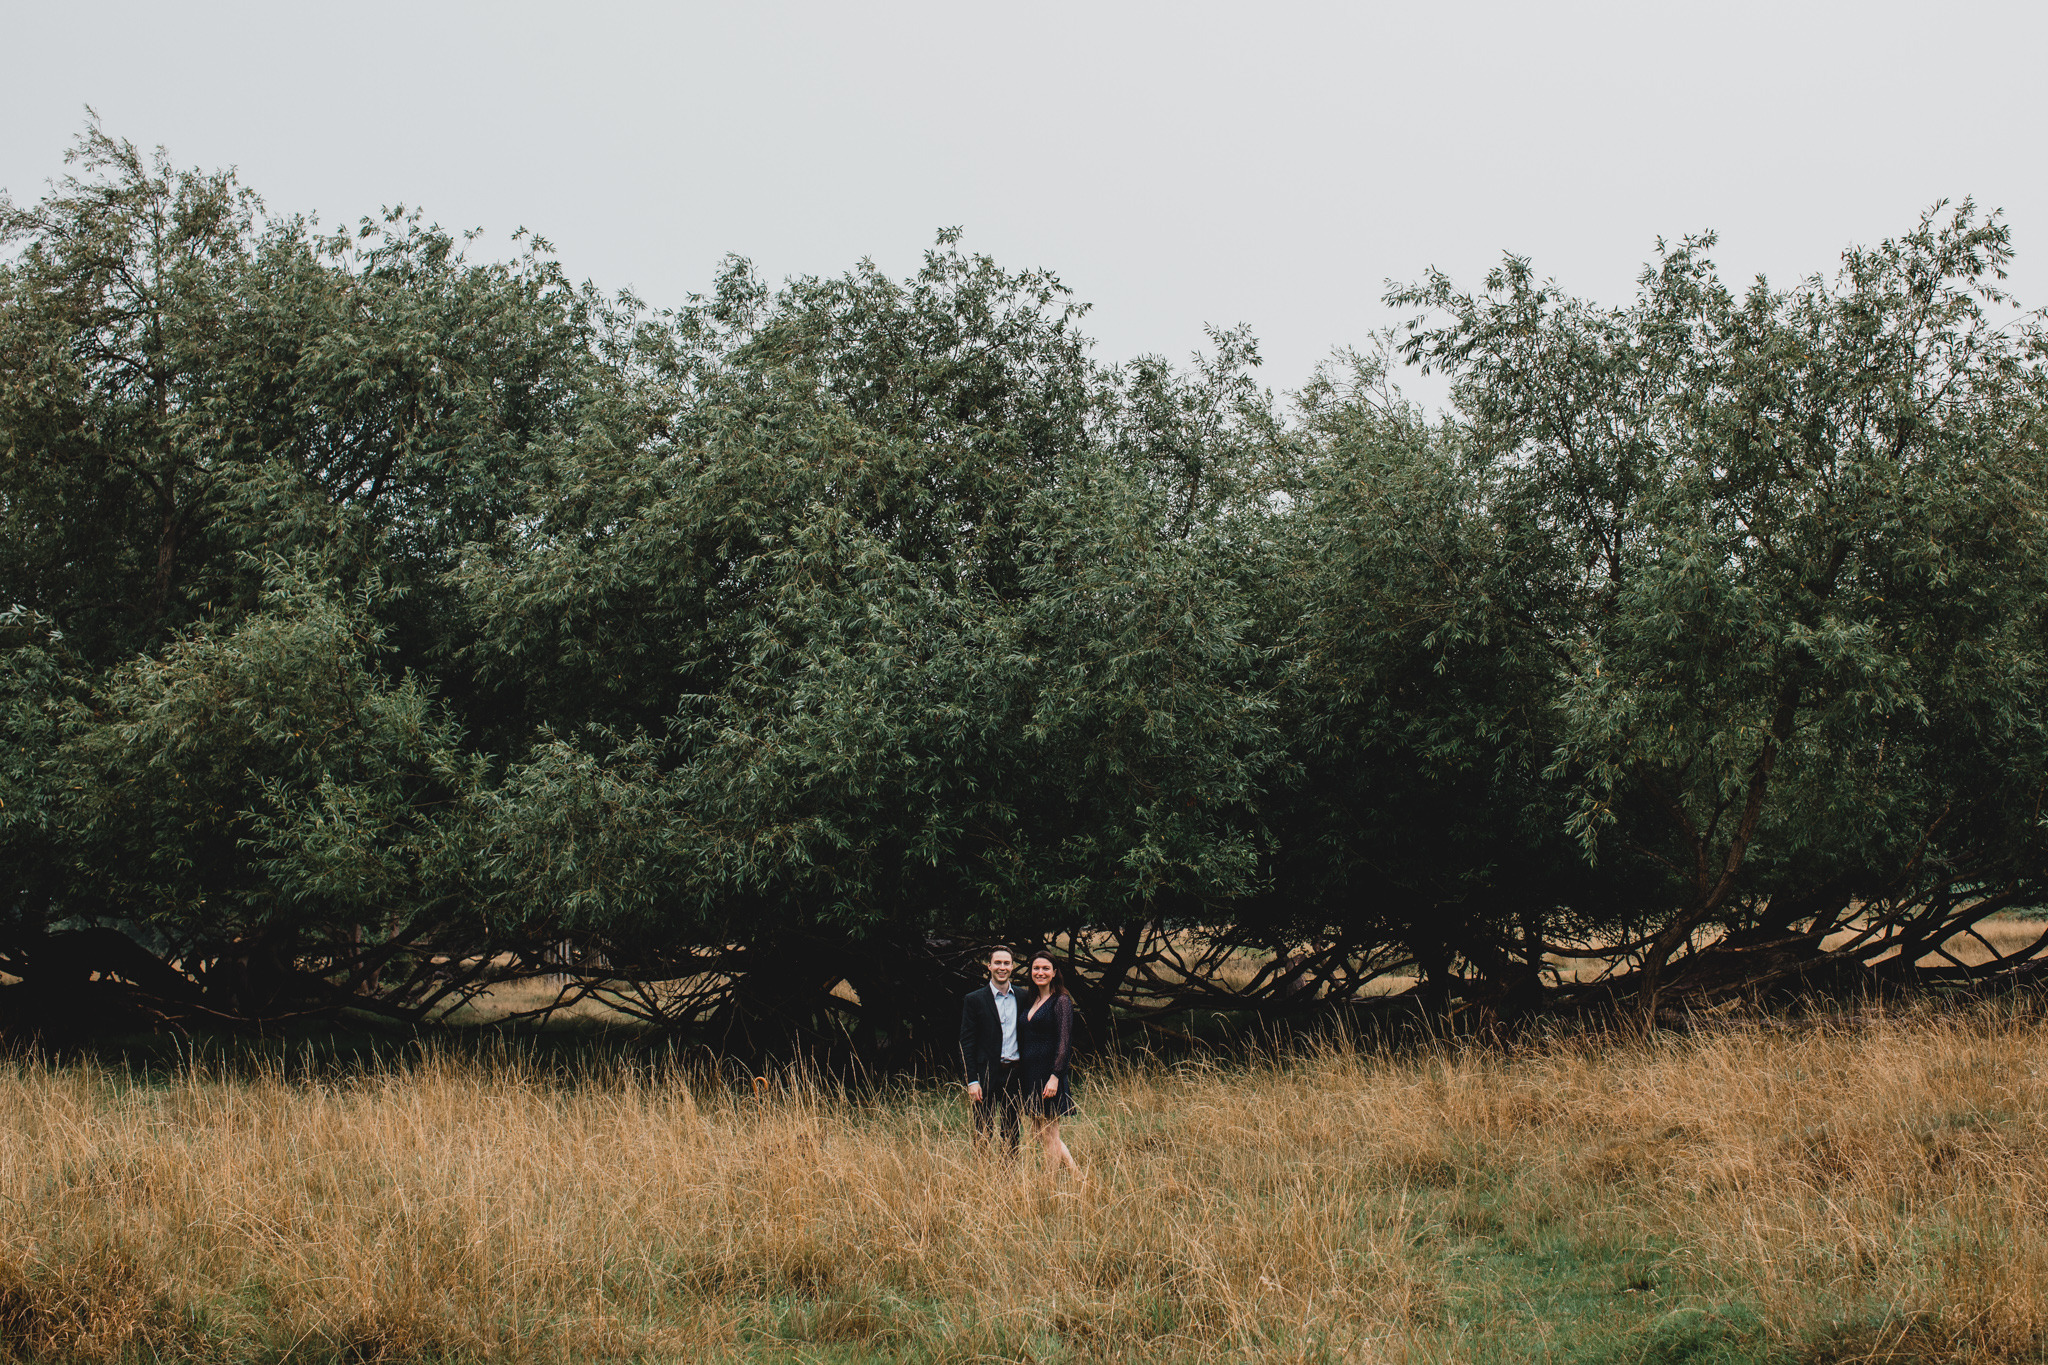 London England Outdoorsy Engagement Shoot